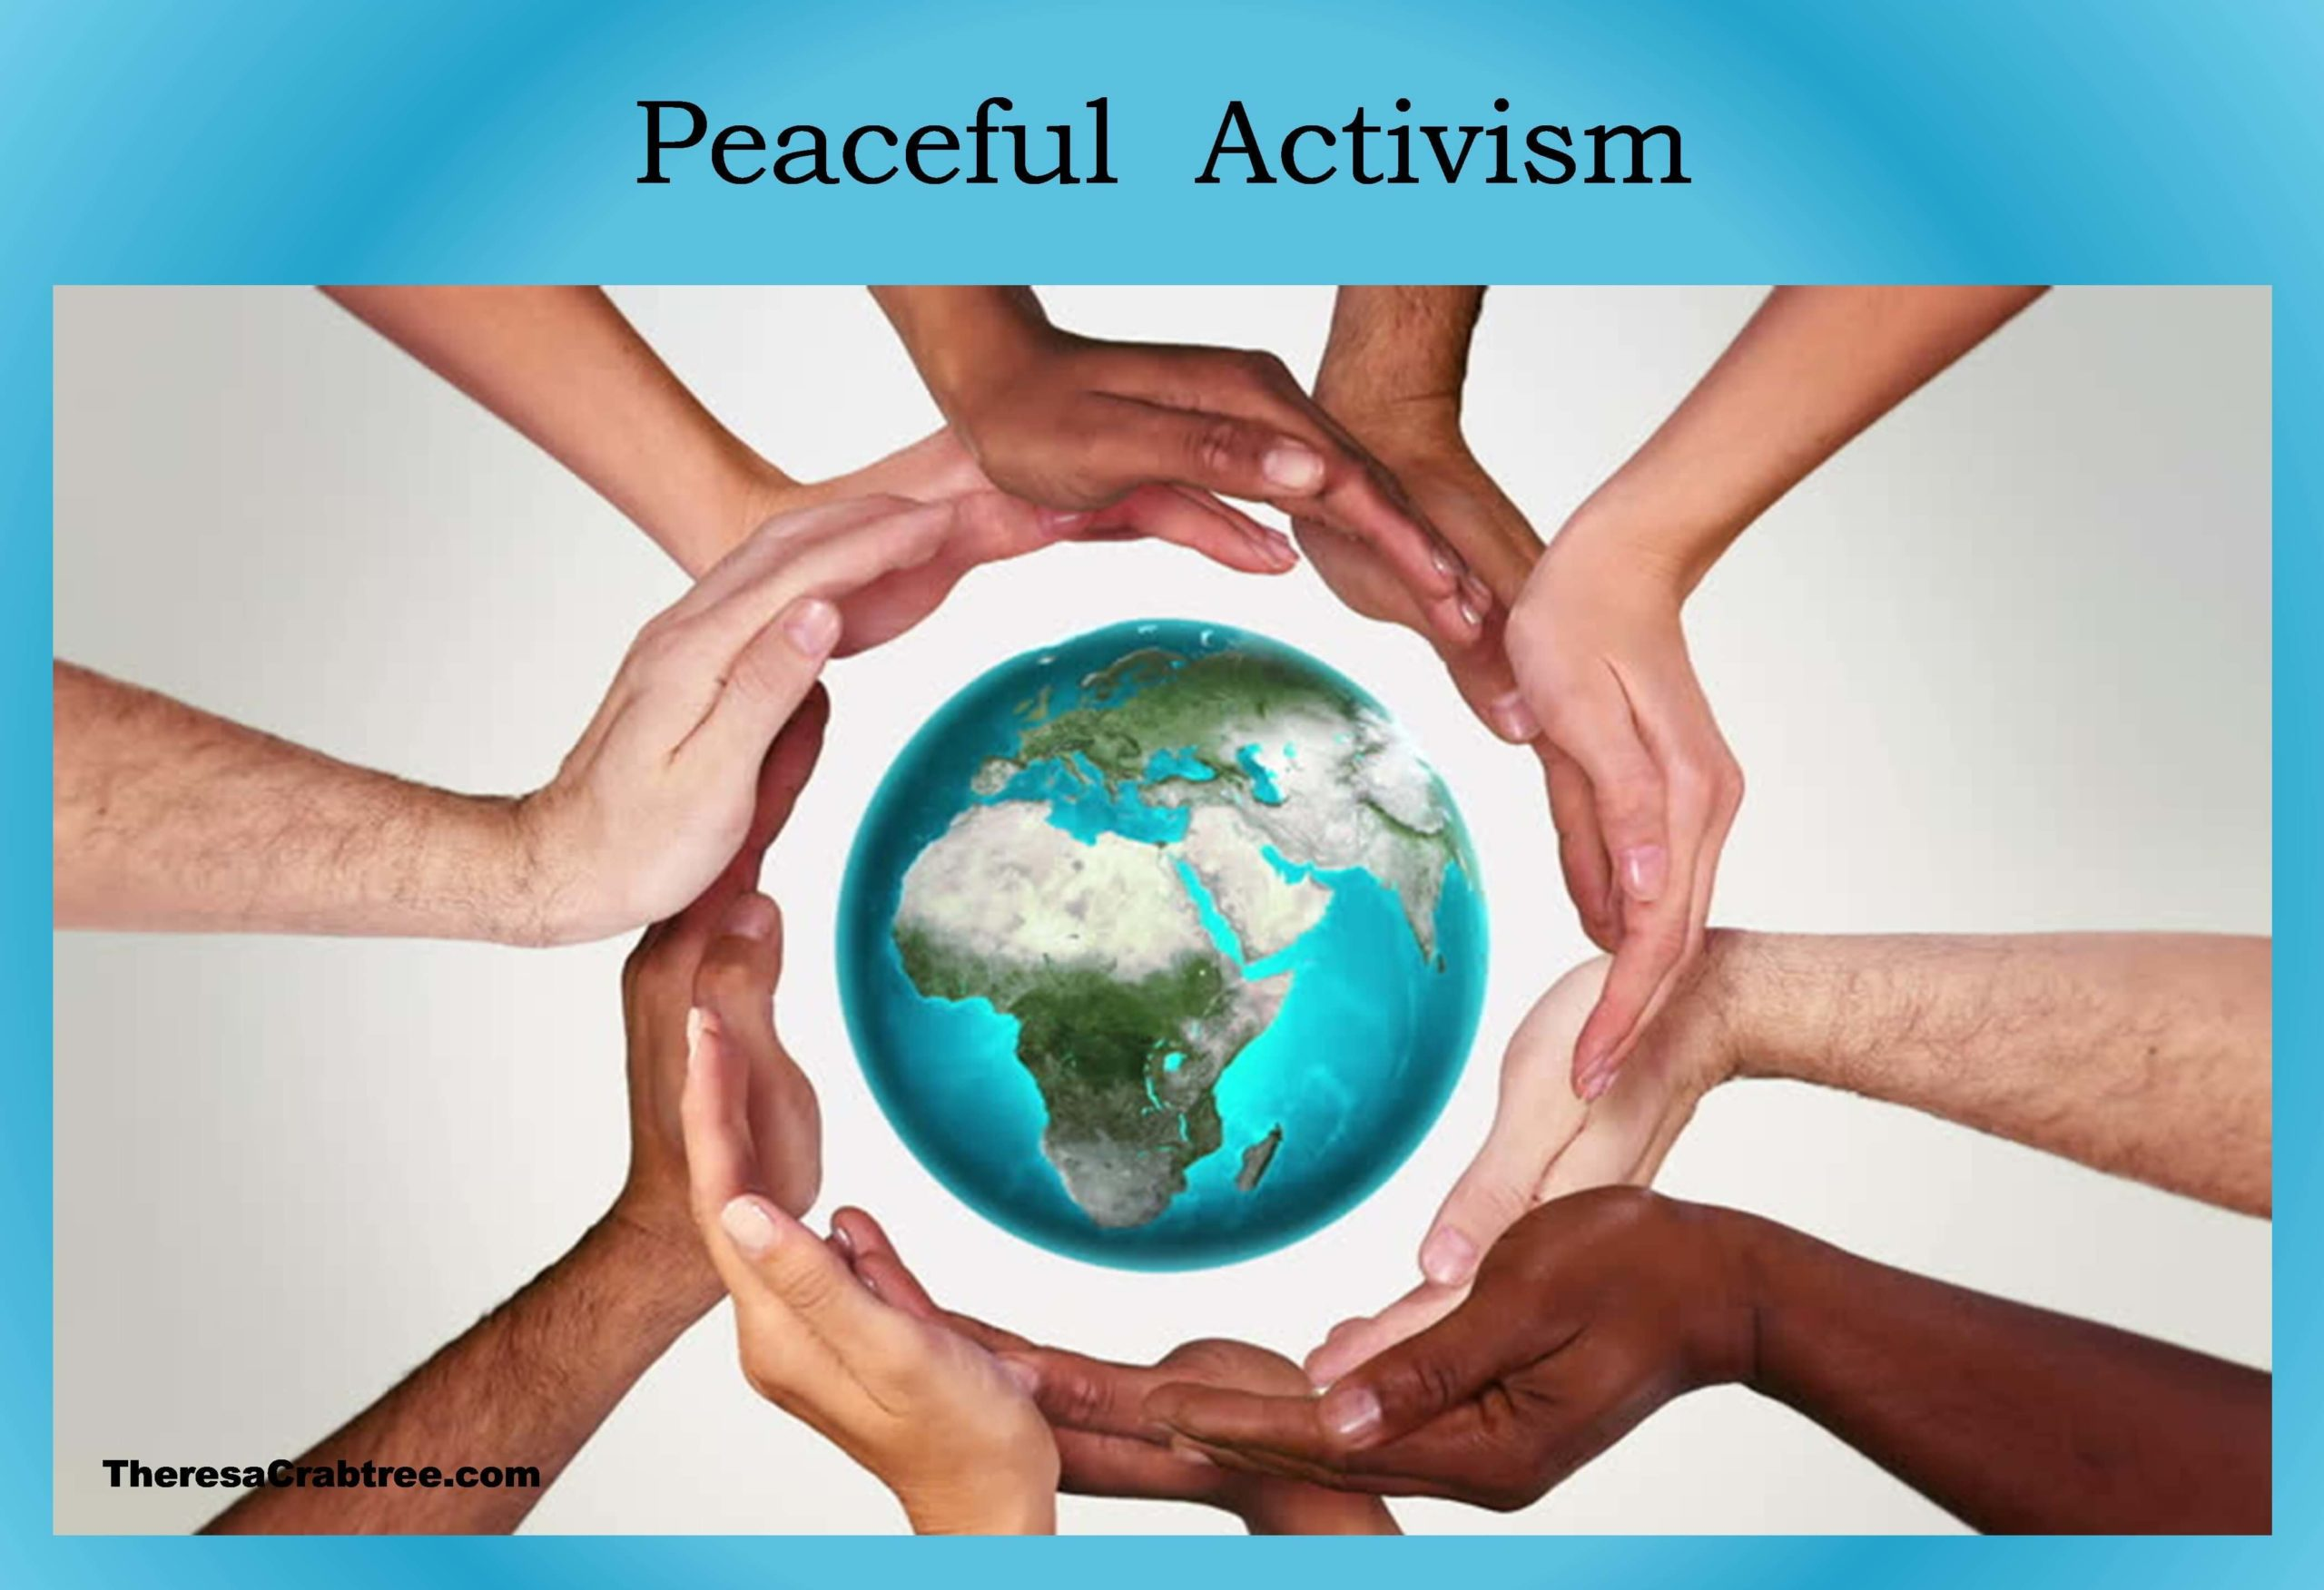 Peaceful Activism